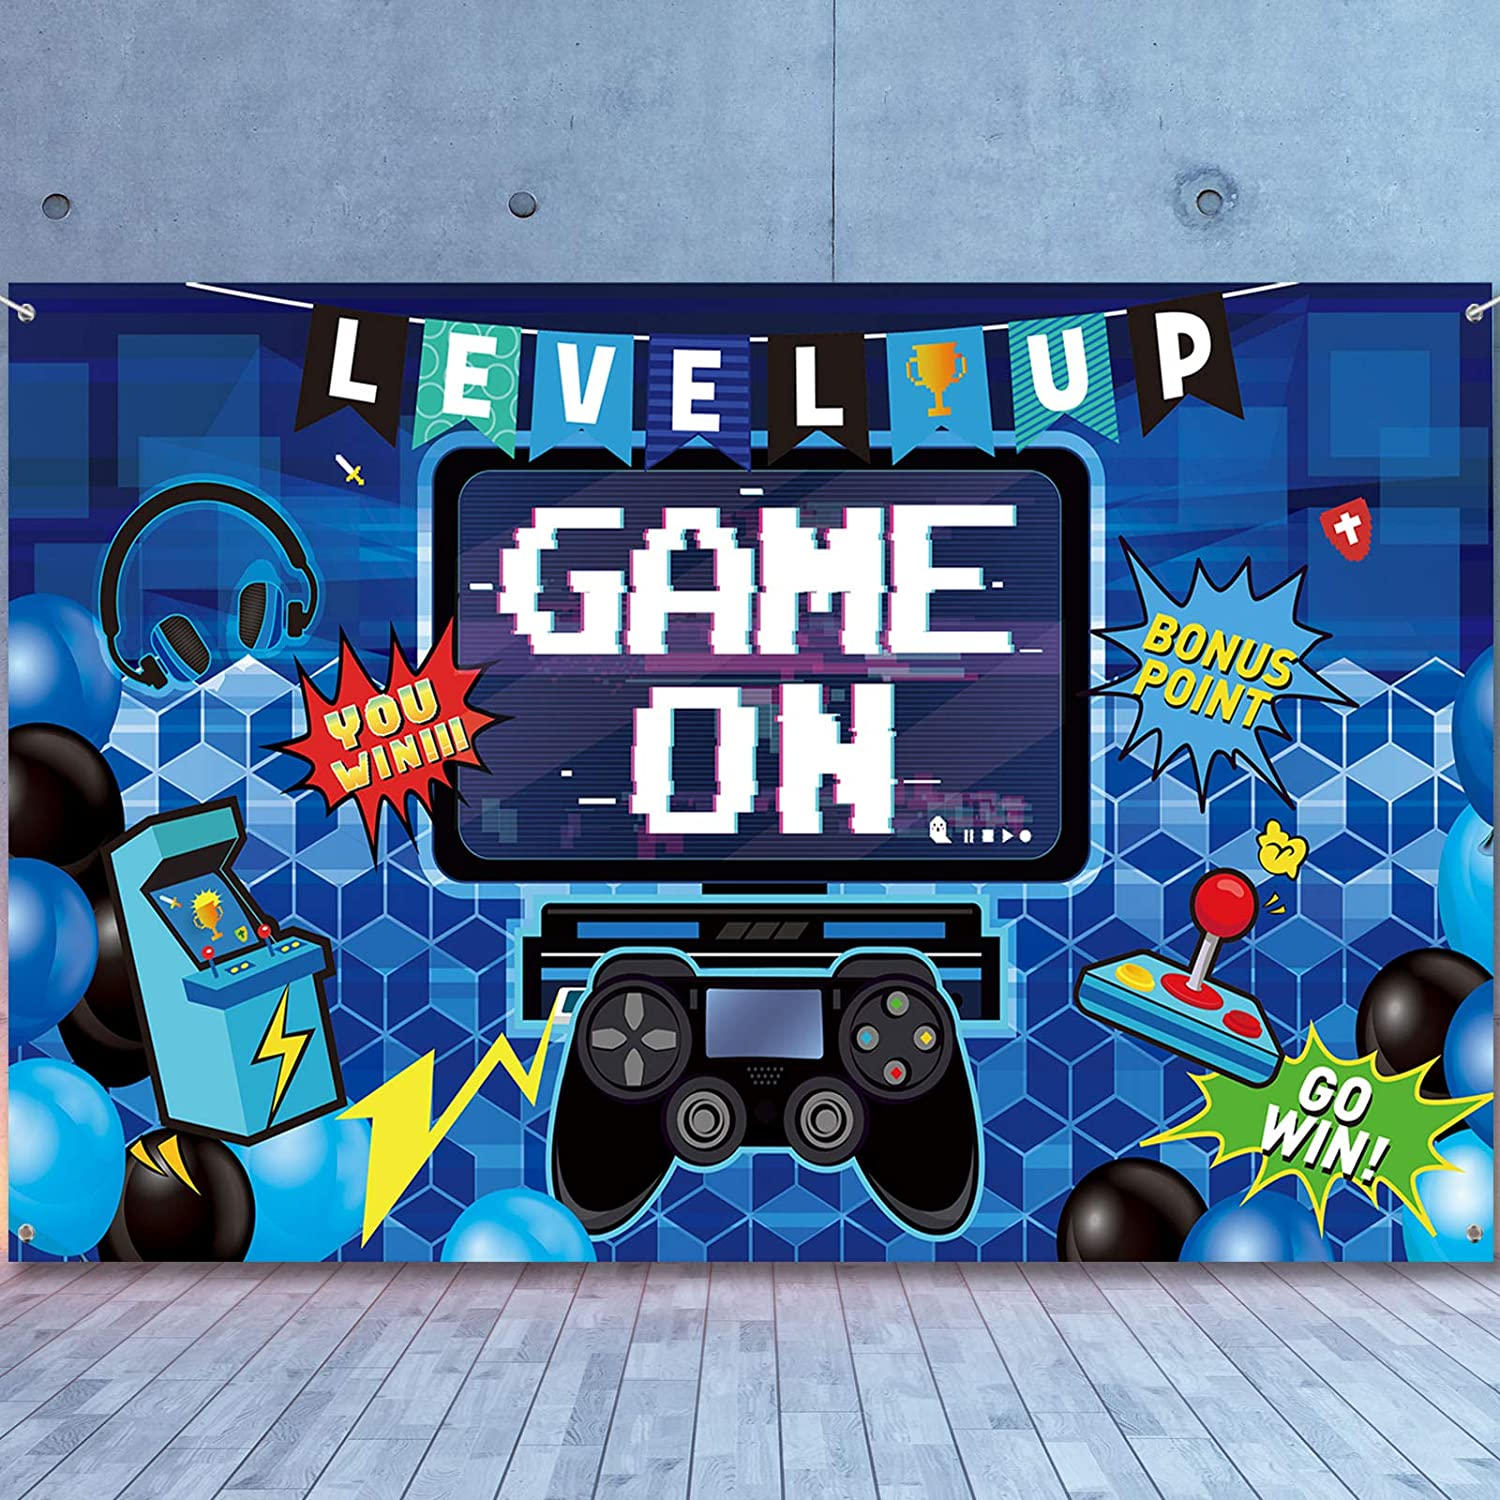 Video Game Party Decoration Video Gaming Photo Backdrop Background Birthday Photo Banner Gamer Room Decor for Game Fans Video Gamer Party Decoration Supplies, 70.9 x 43.3 Inch